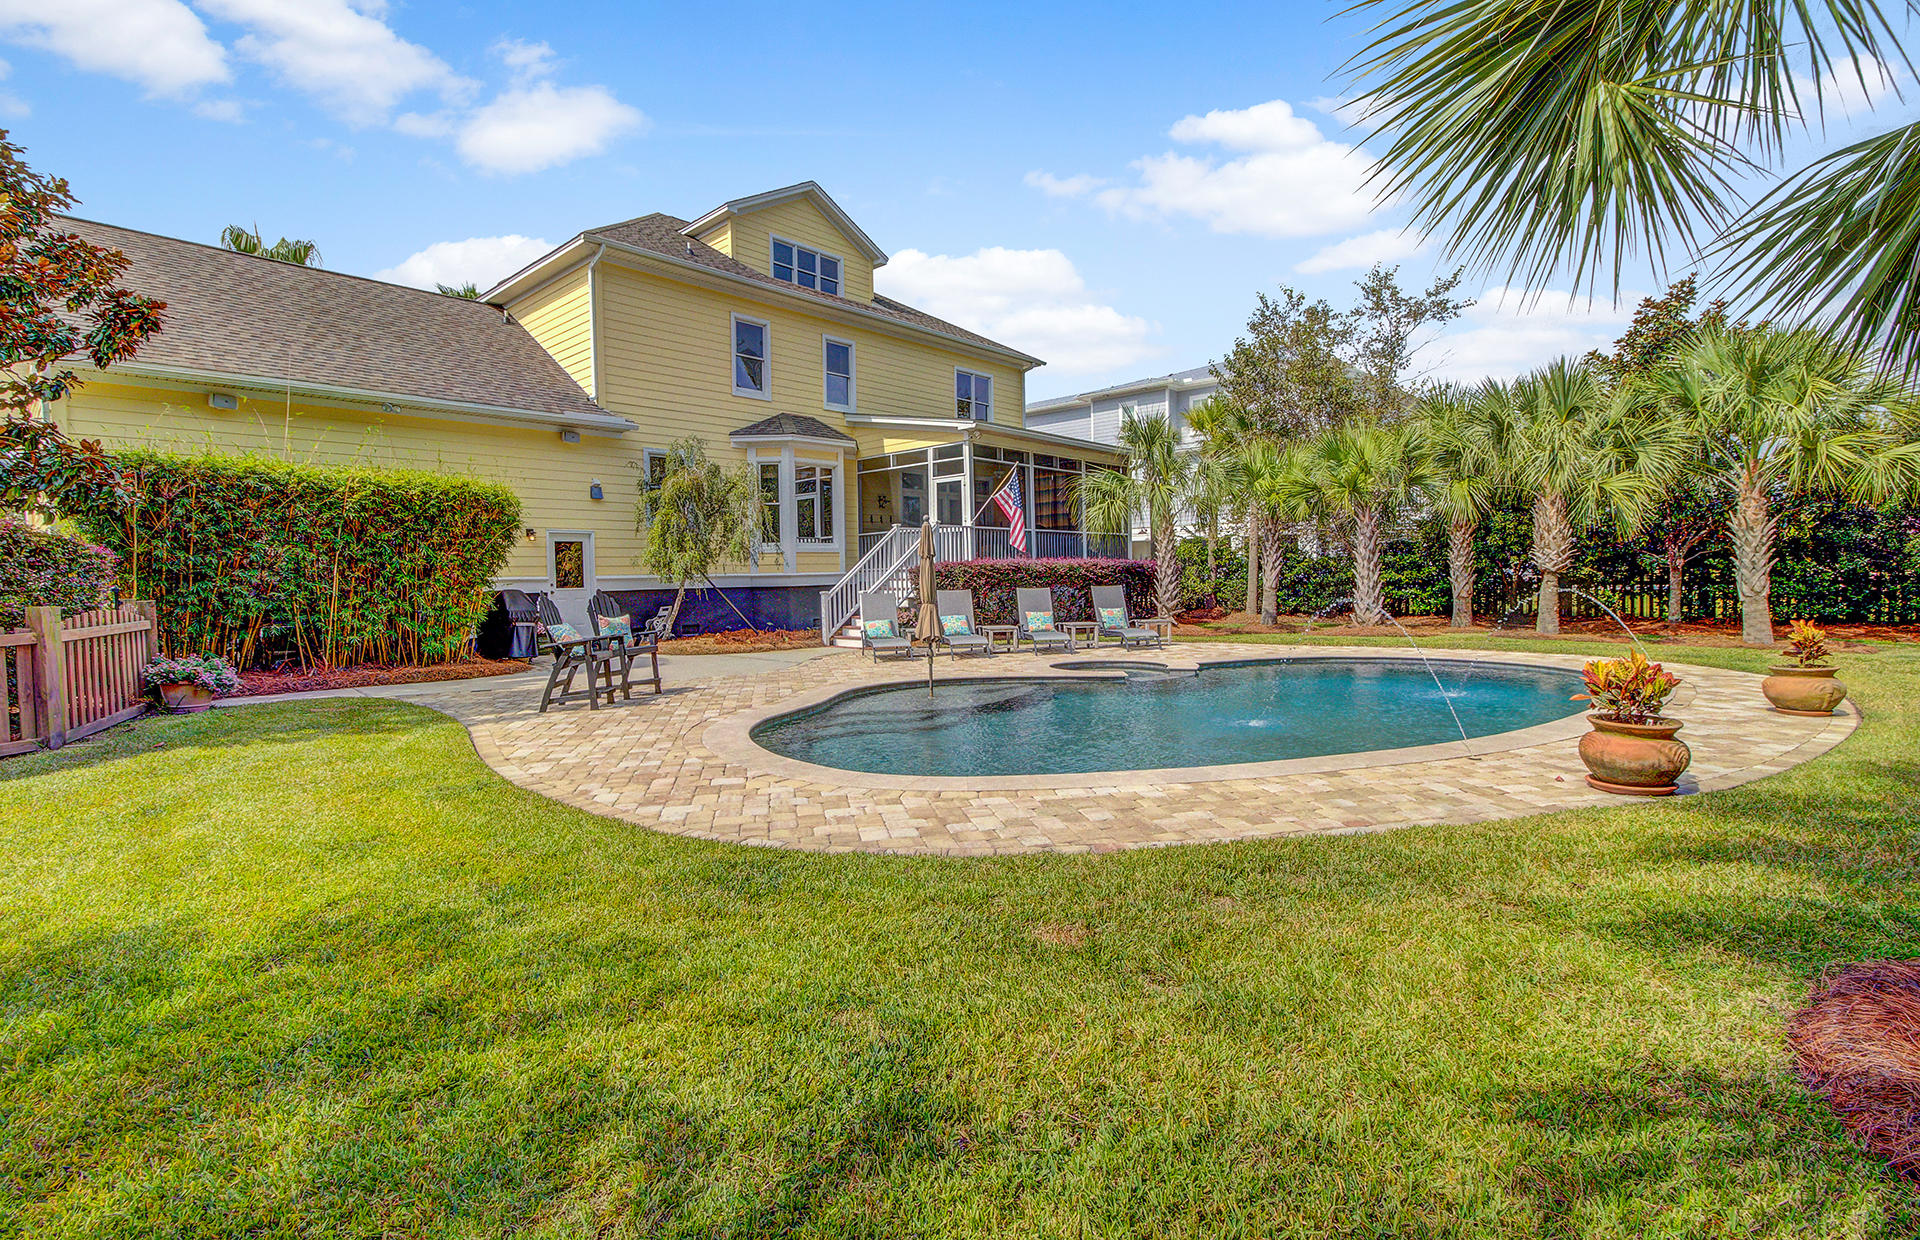 Rivertowne On The Wando Homes For Sale - 2073 Willbrook, Mount Pleasant, SC - 11